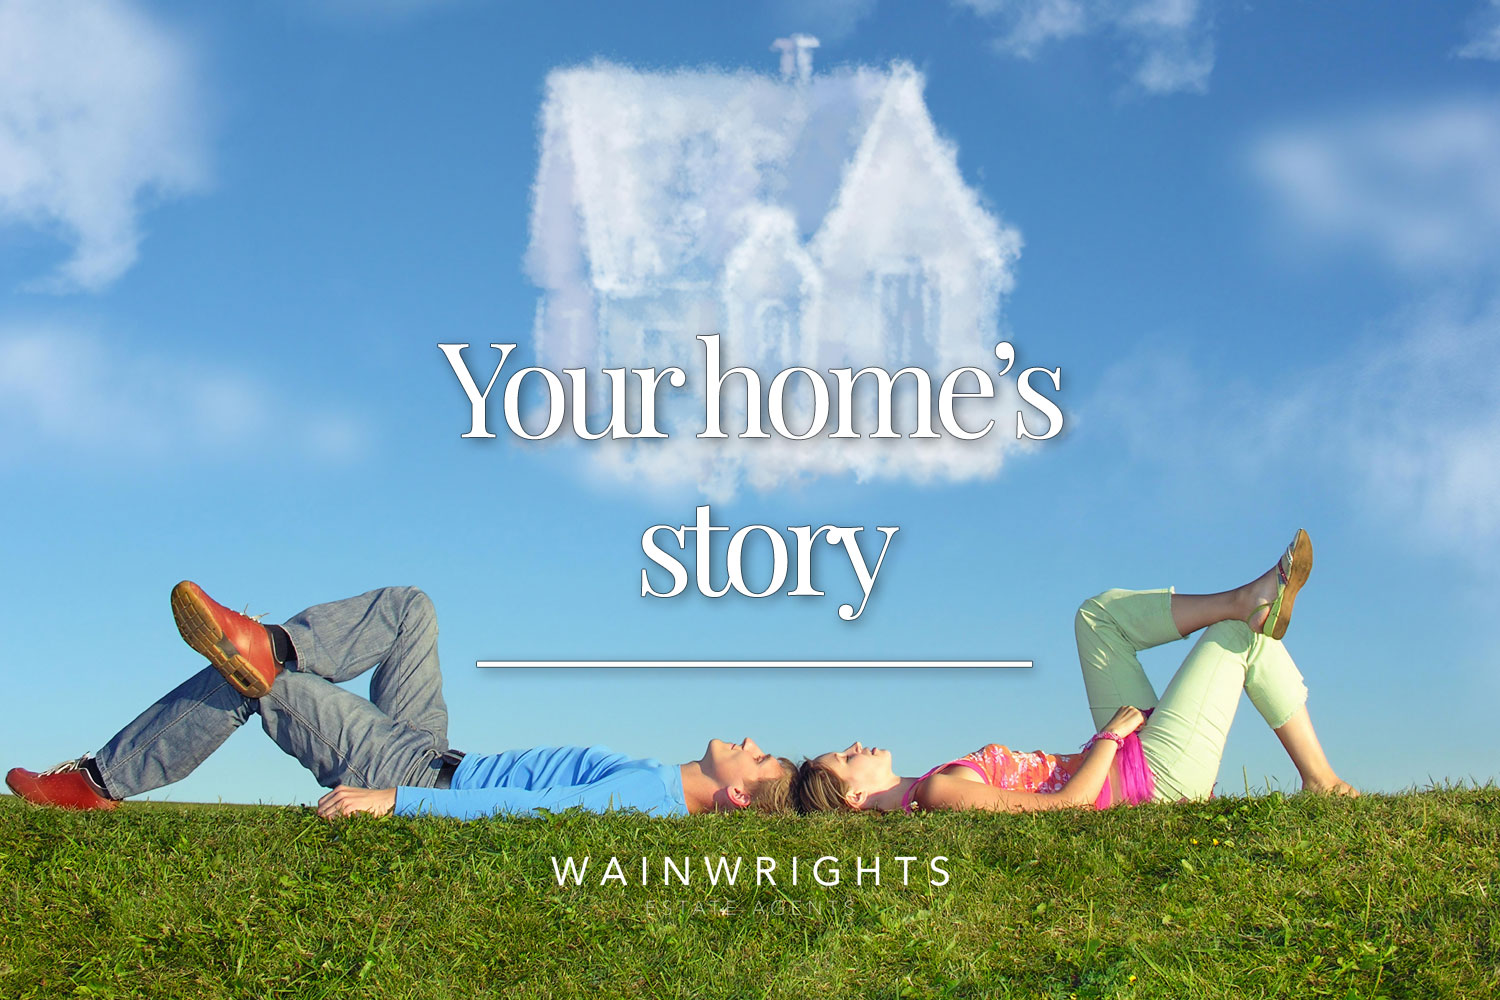 Your-home's-story-2